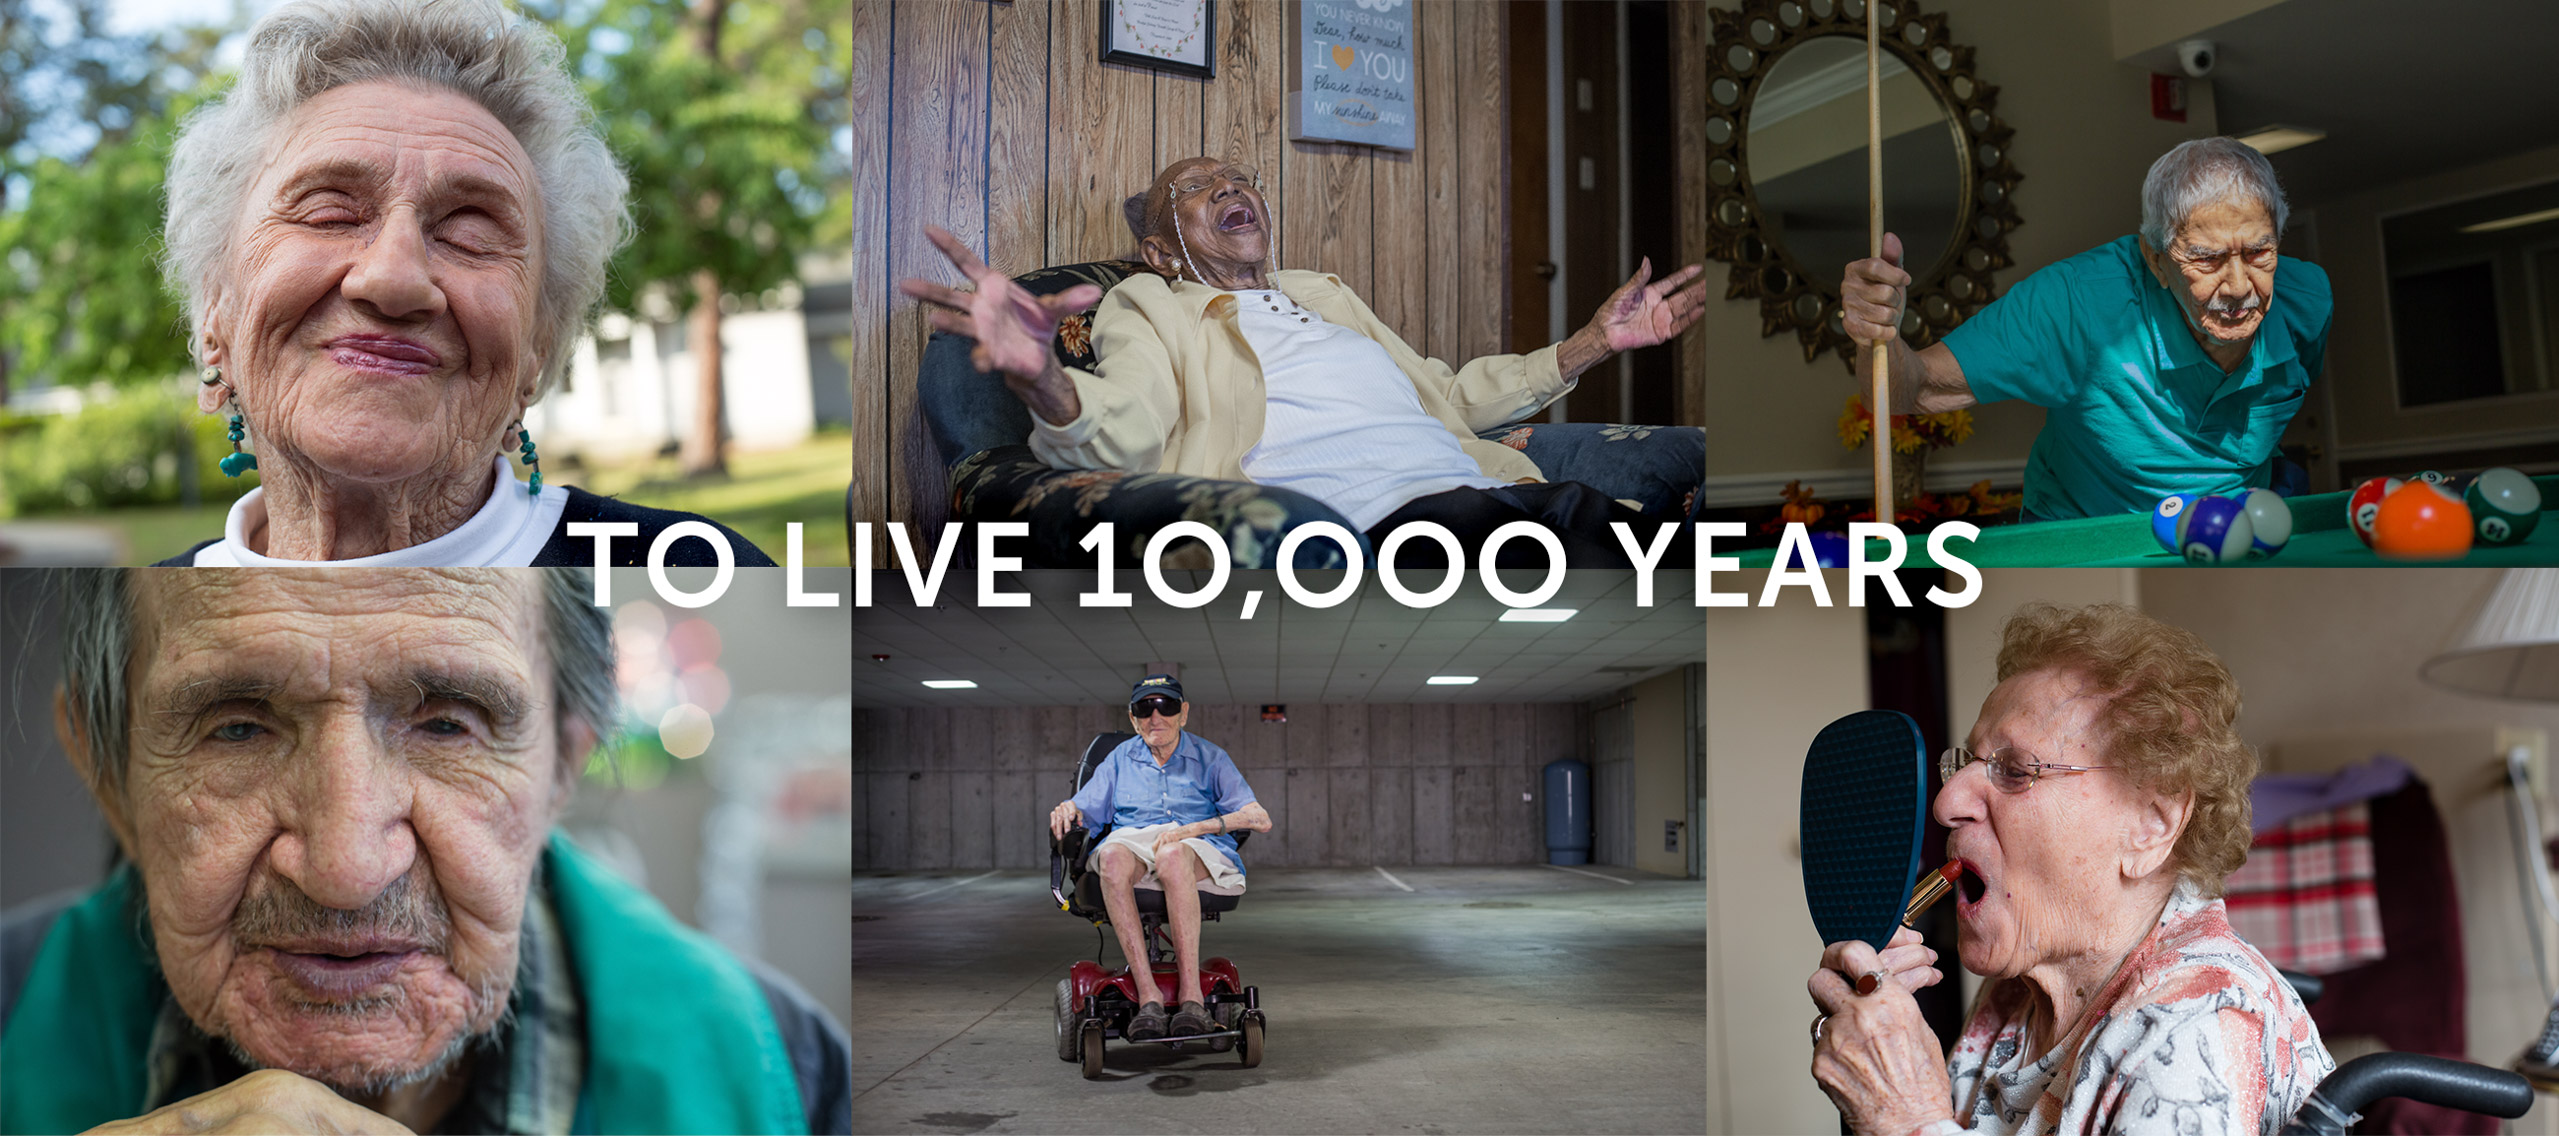 Fullscreen composite of 6 photographs from the To Live 10,000 Years portrait series by Danny Goldfield.